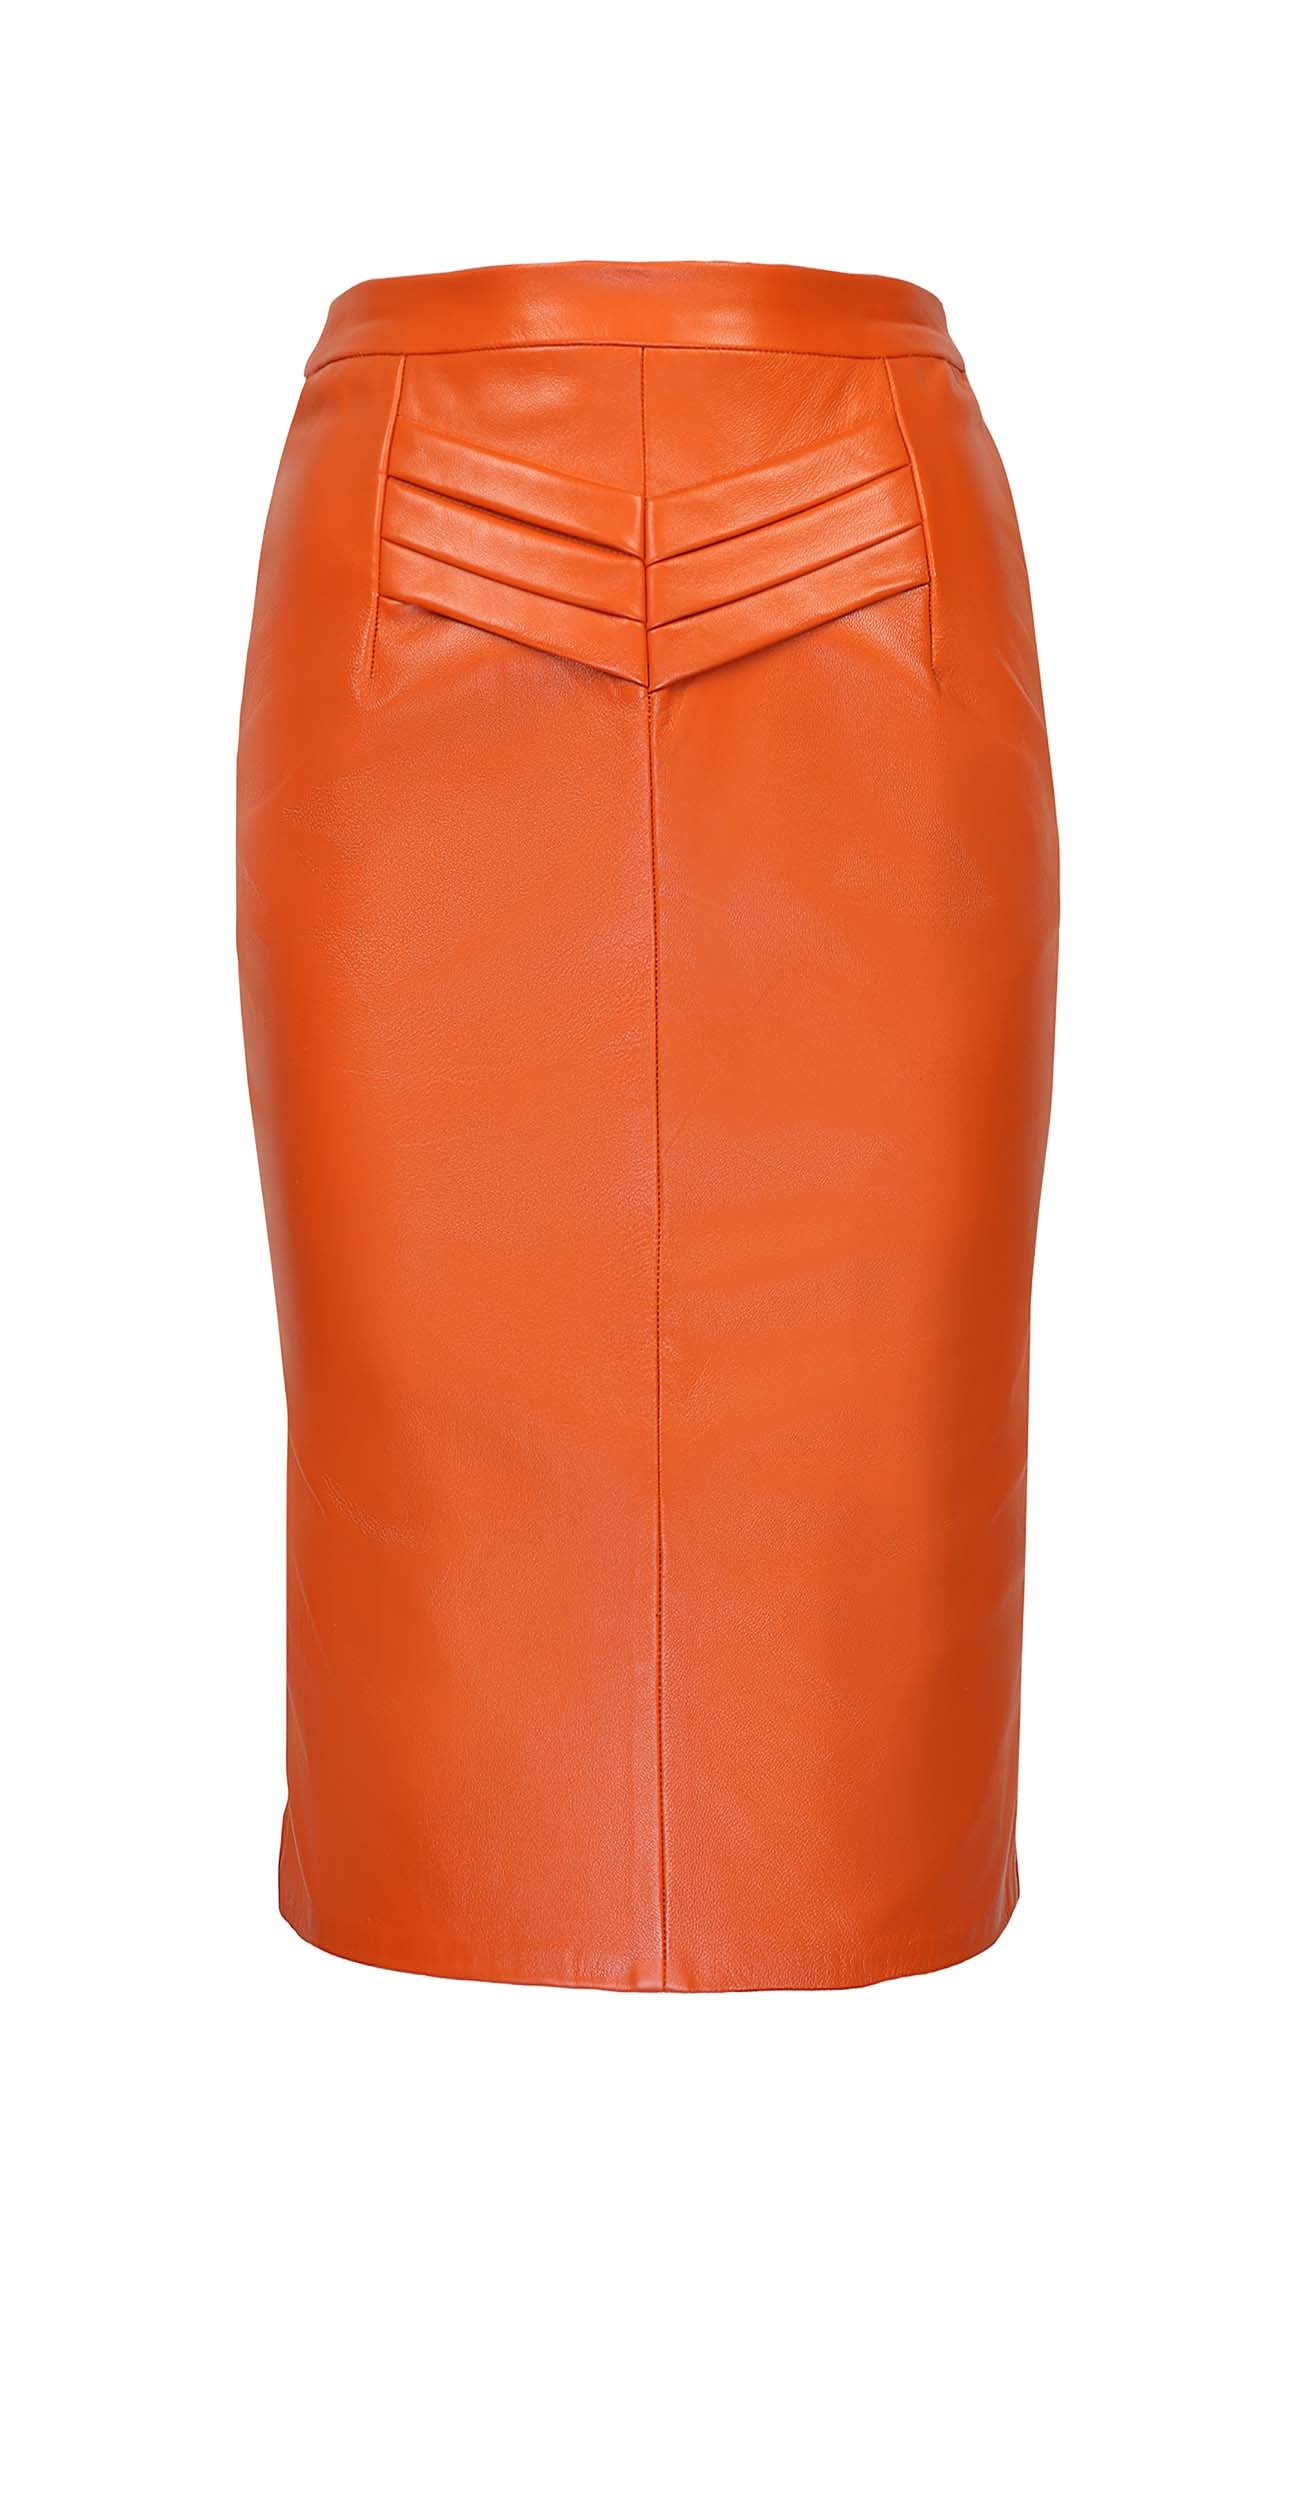 Hot orange leather pencil skirt with a high-rise waist